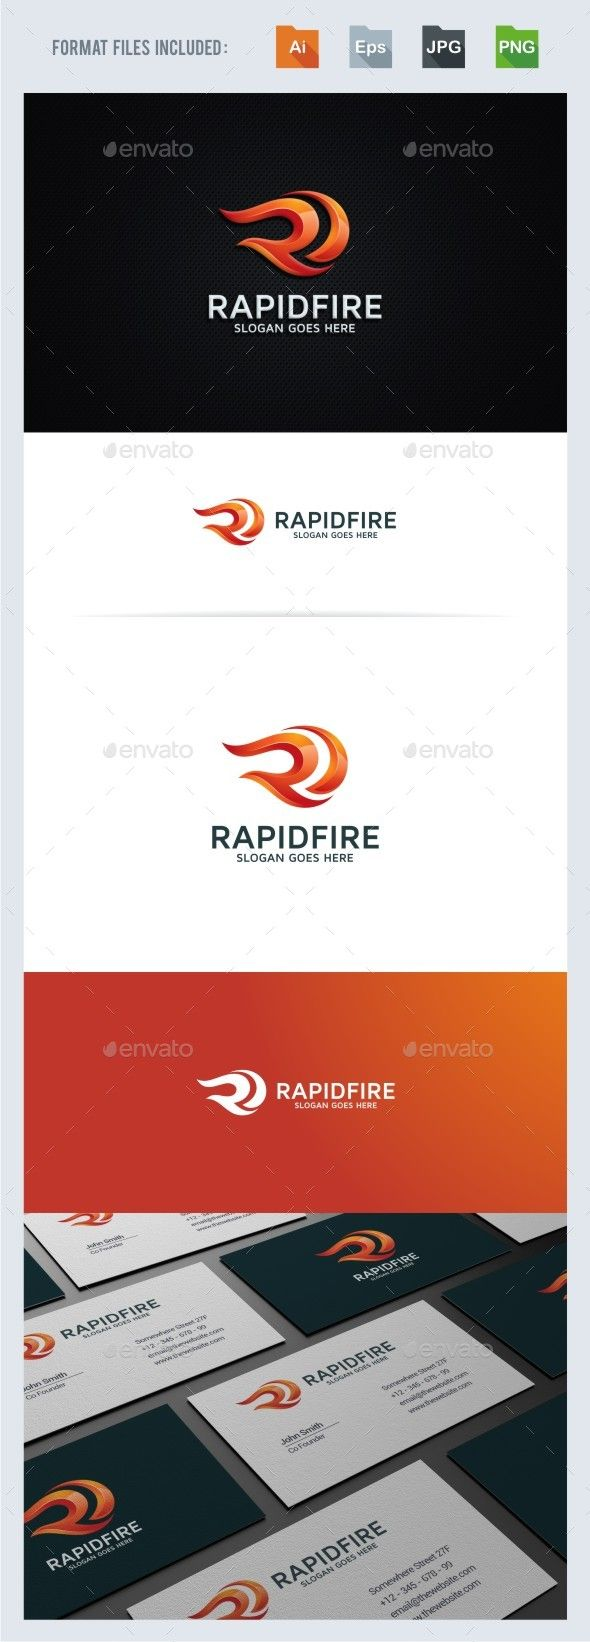 Rapid Fire - R Letter Logo Template